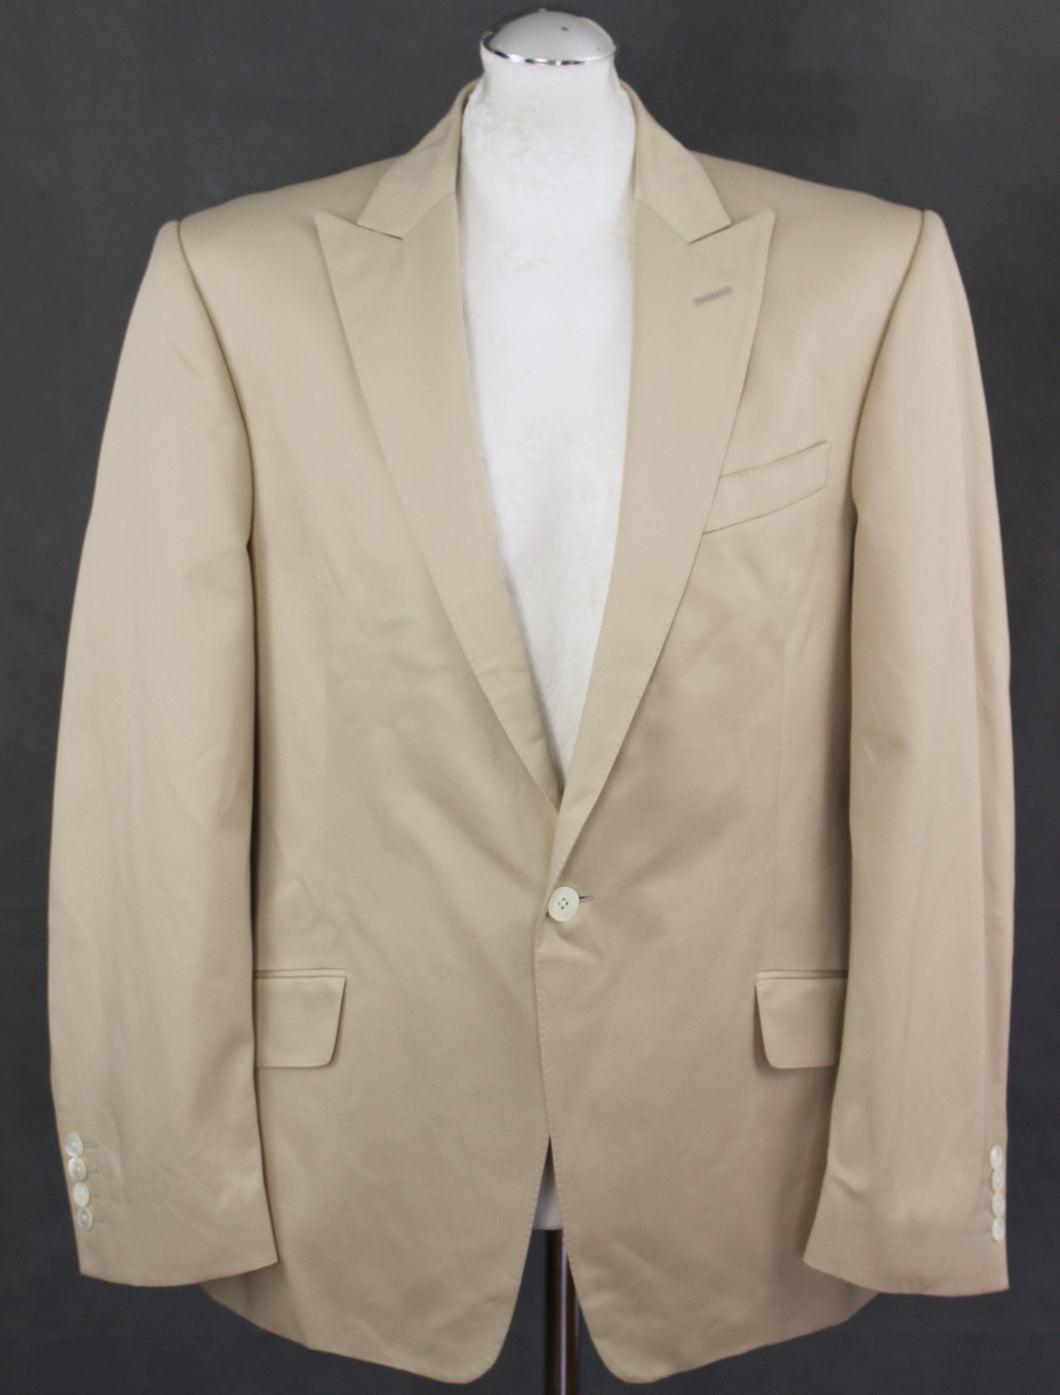 RICHARD JAMES Mens 100% Cotton BLAZER / SPORTS JACKET Size 42R - 42